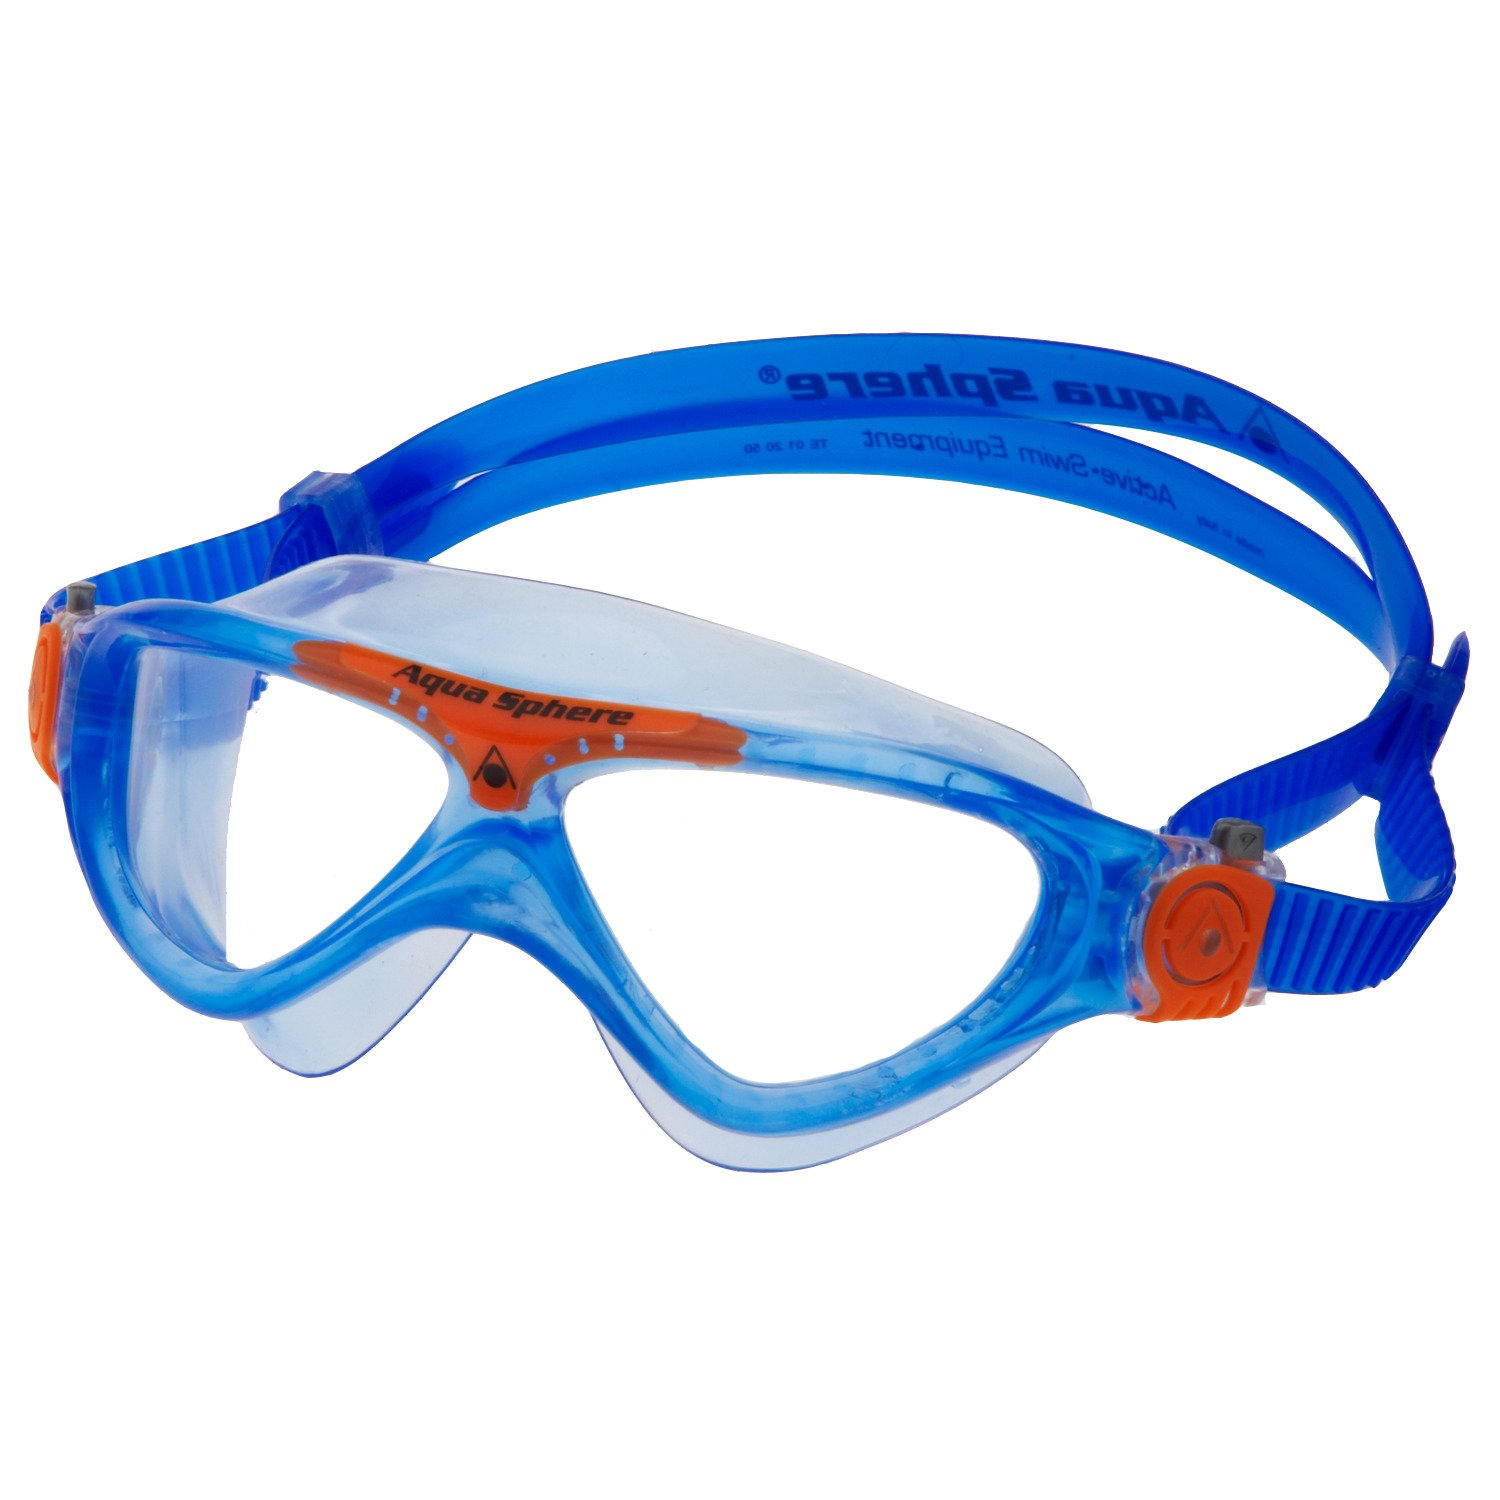 afecc94e3c7 Aqua Sphere Vista Jr. Clear Lens Swimming Goggles